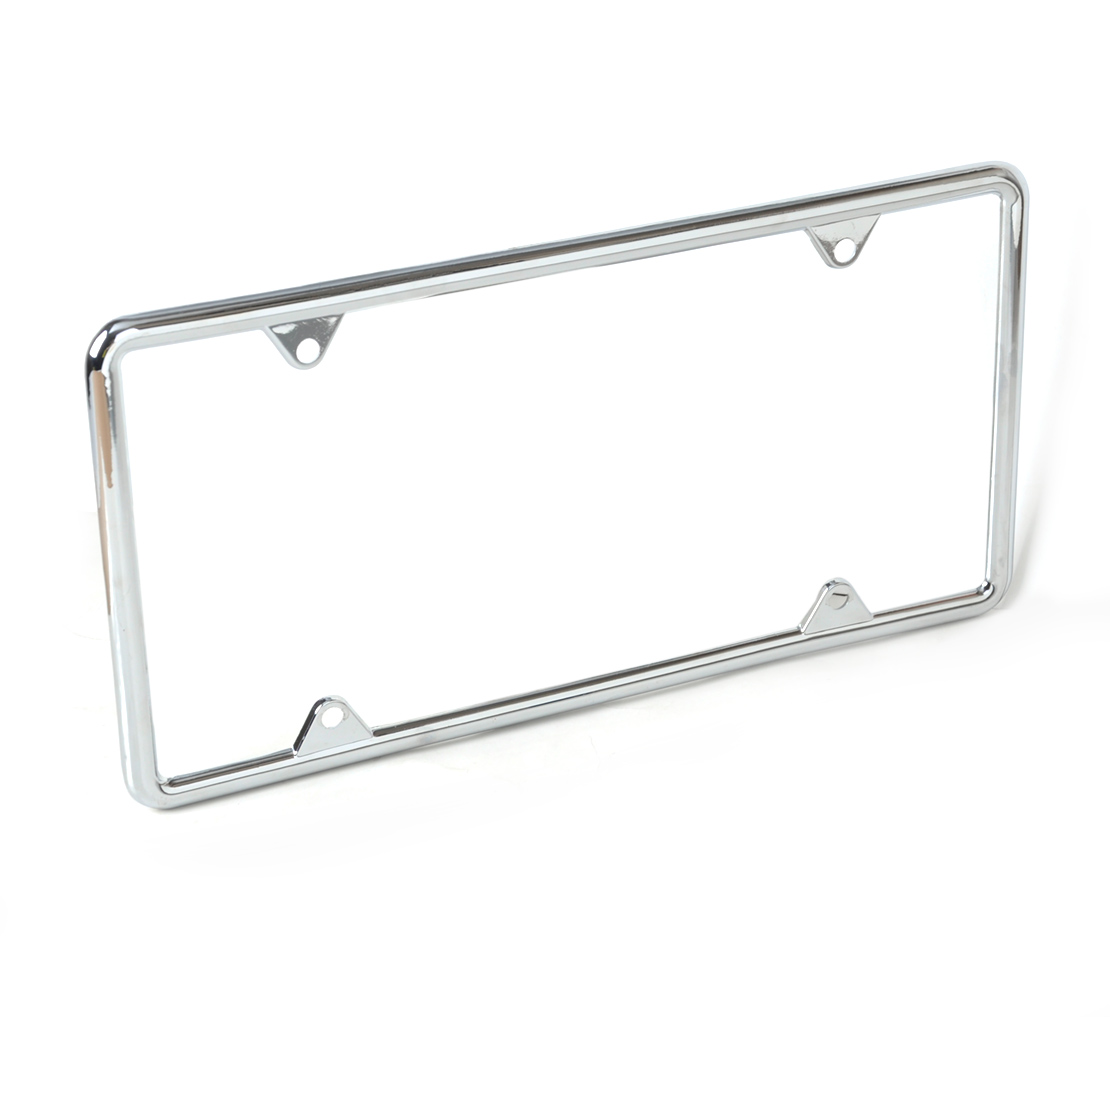 Buy jaguar license plate frame and get free shipping on AliExpress.com